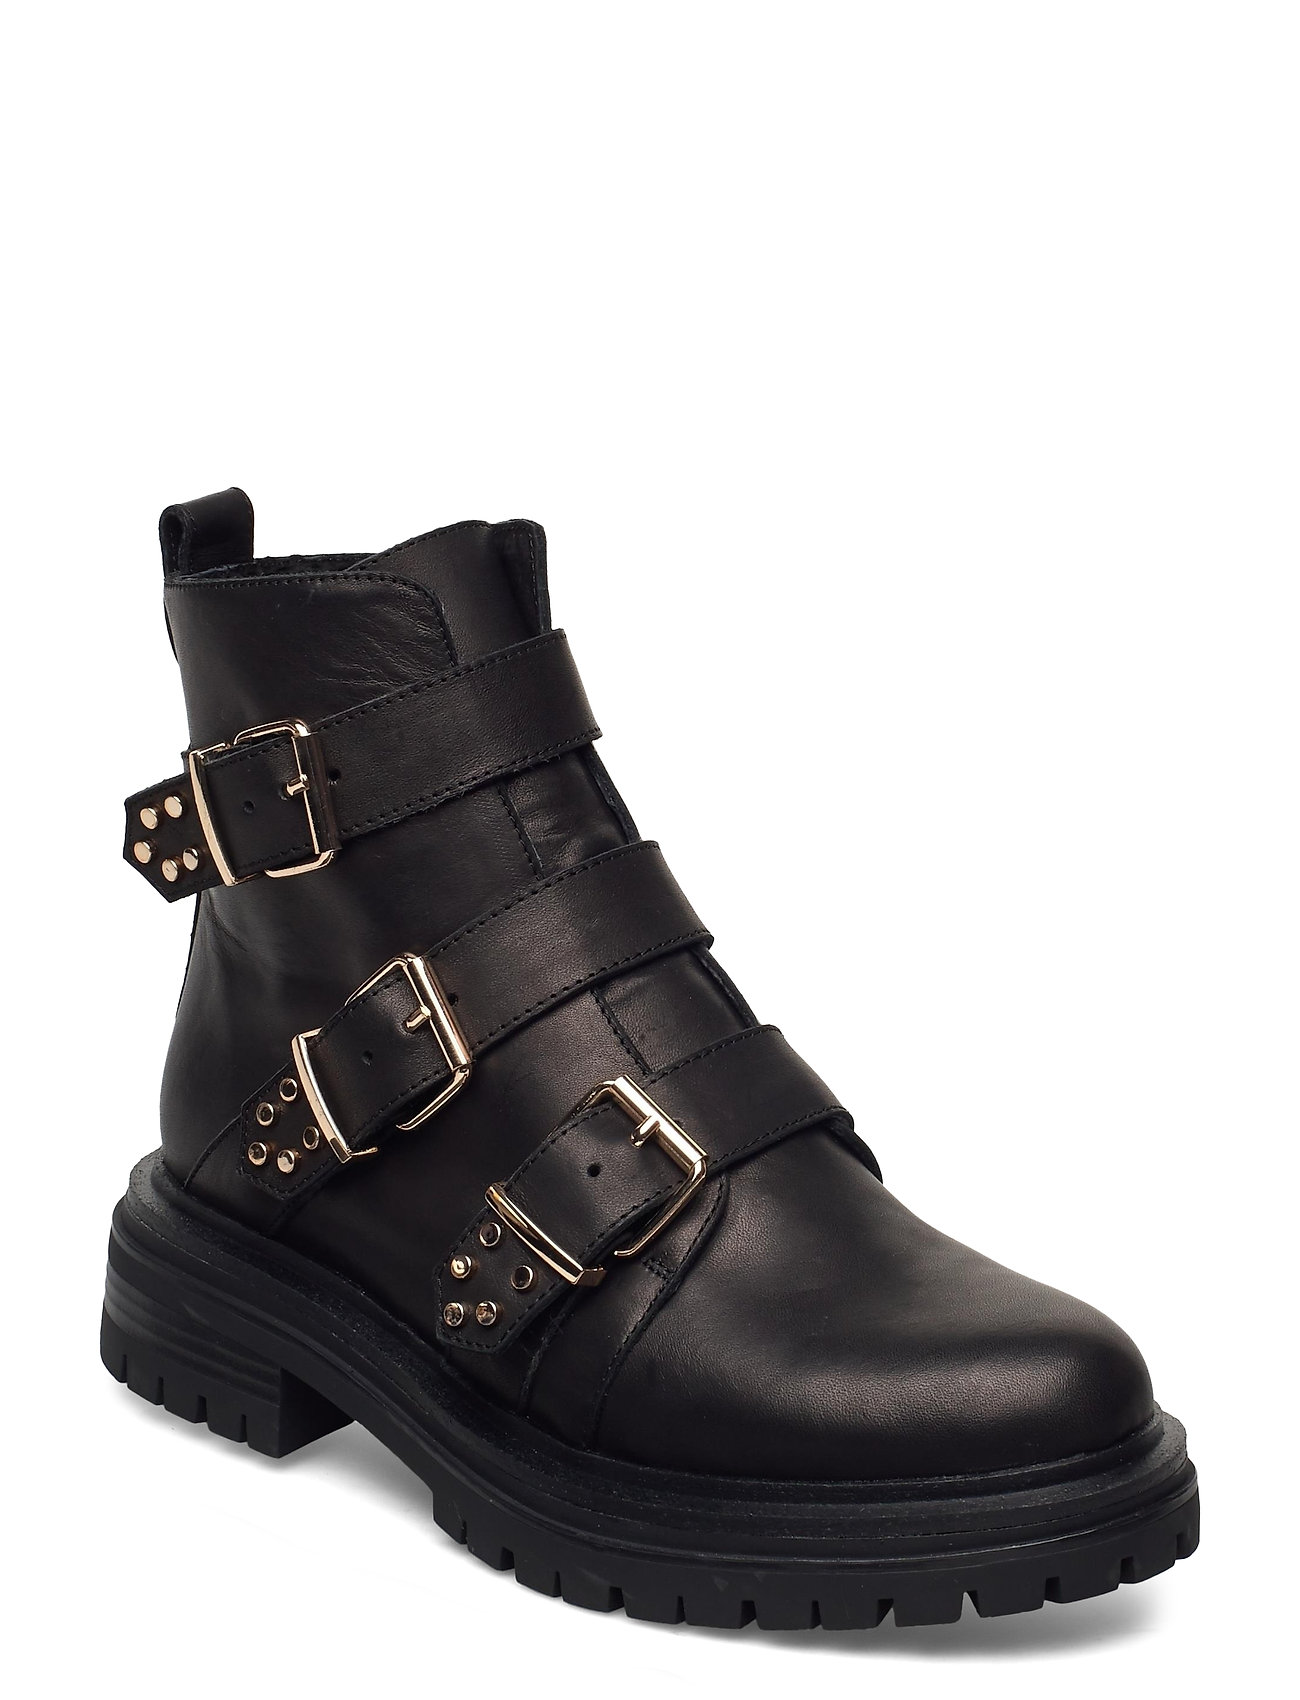 Image of Stb-Franka Strappy L Shoes Boots Ankle Boots Ankle Boot - Flat Sort Shoe The Bear (3454940029)